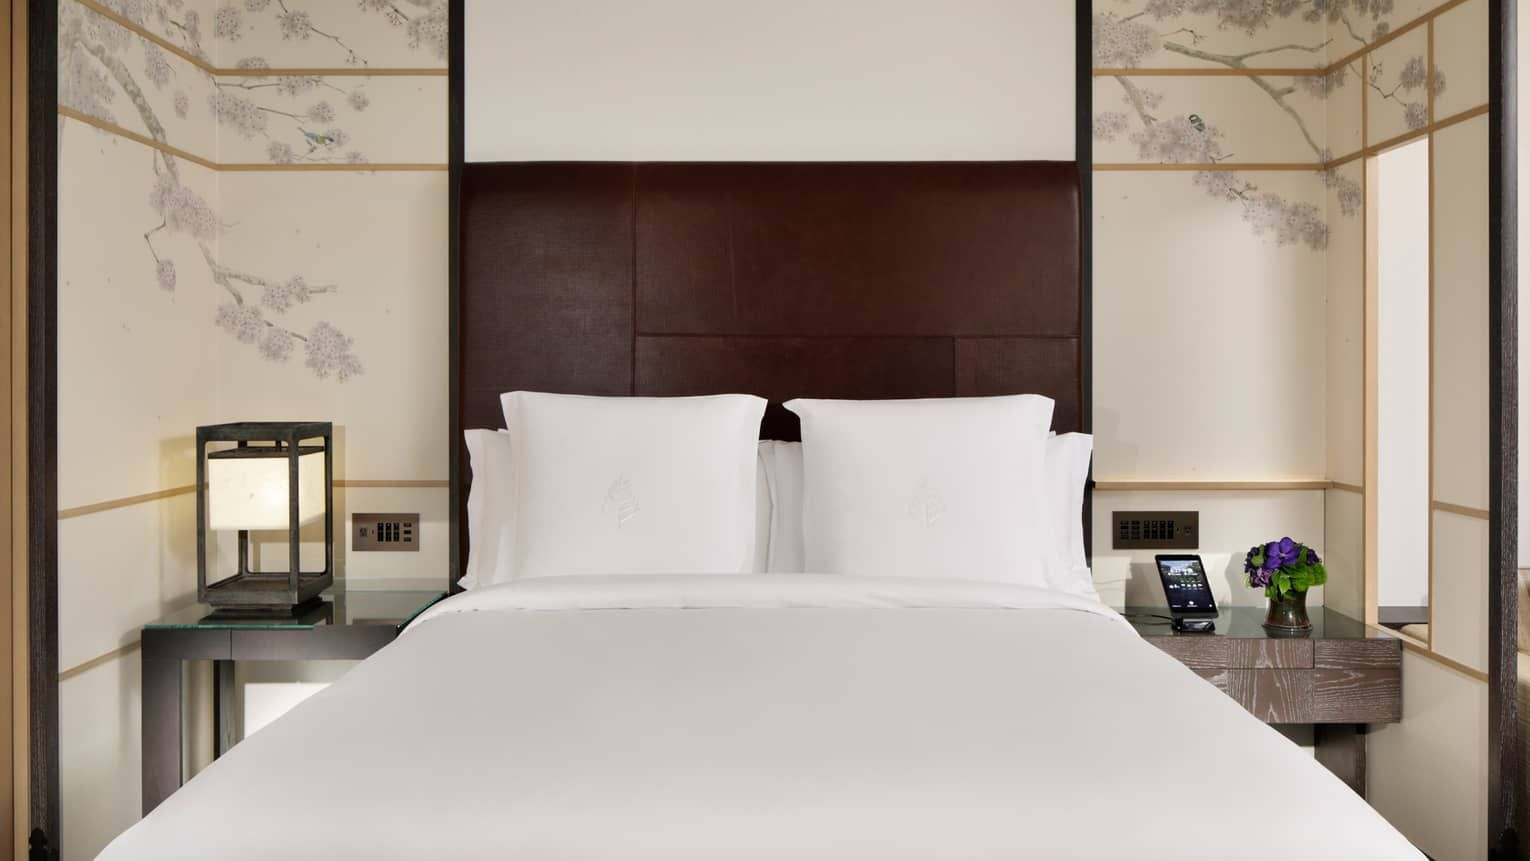 5 Star Luxury Hotel Rooms Suites Four Seasons Kyoto With